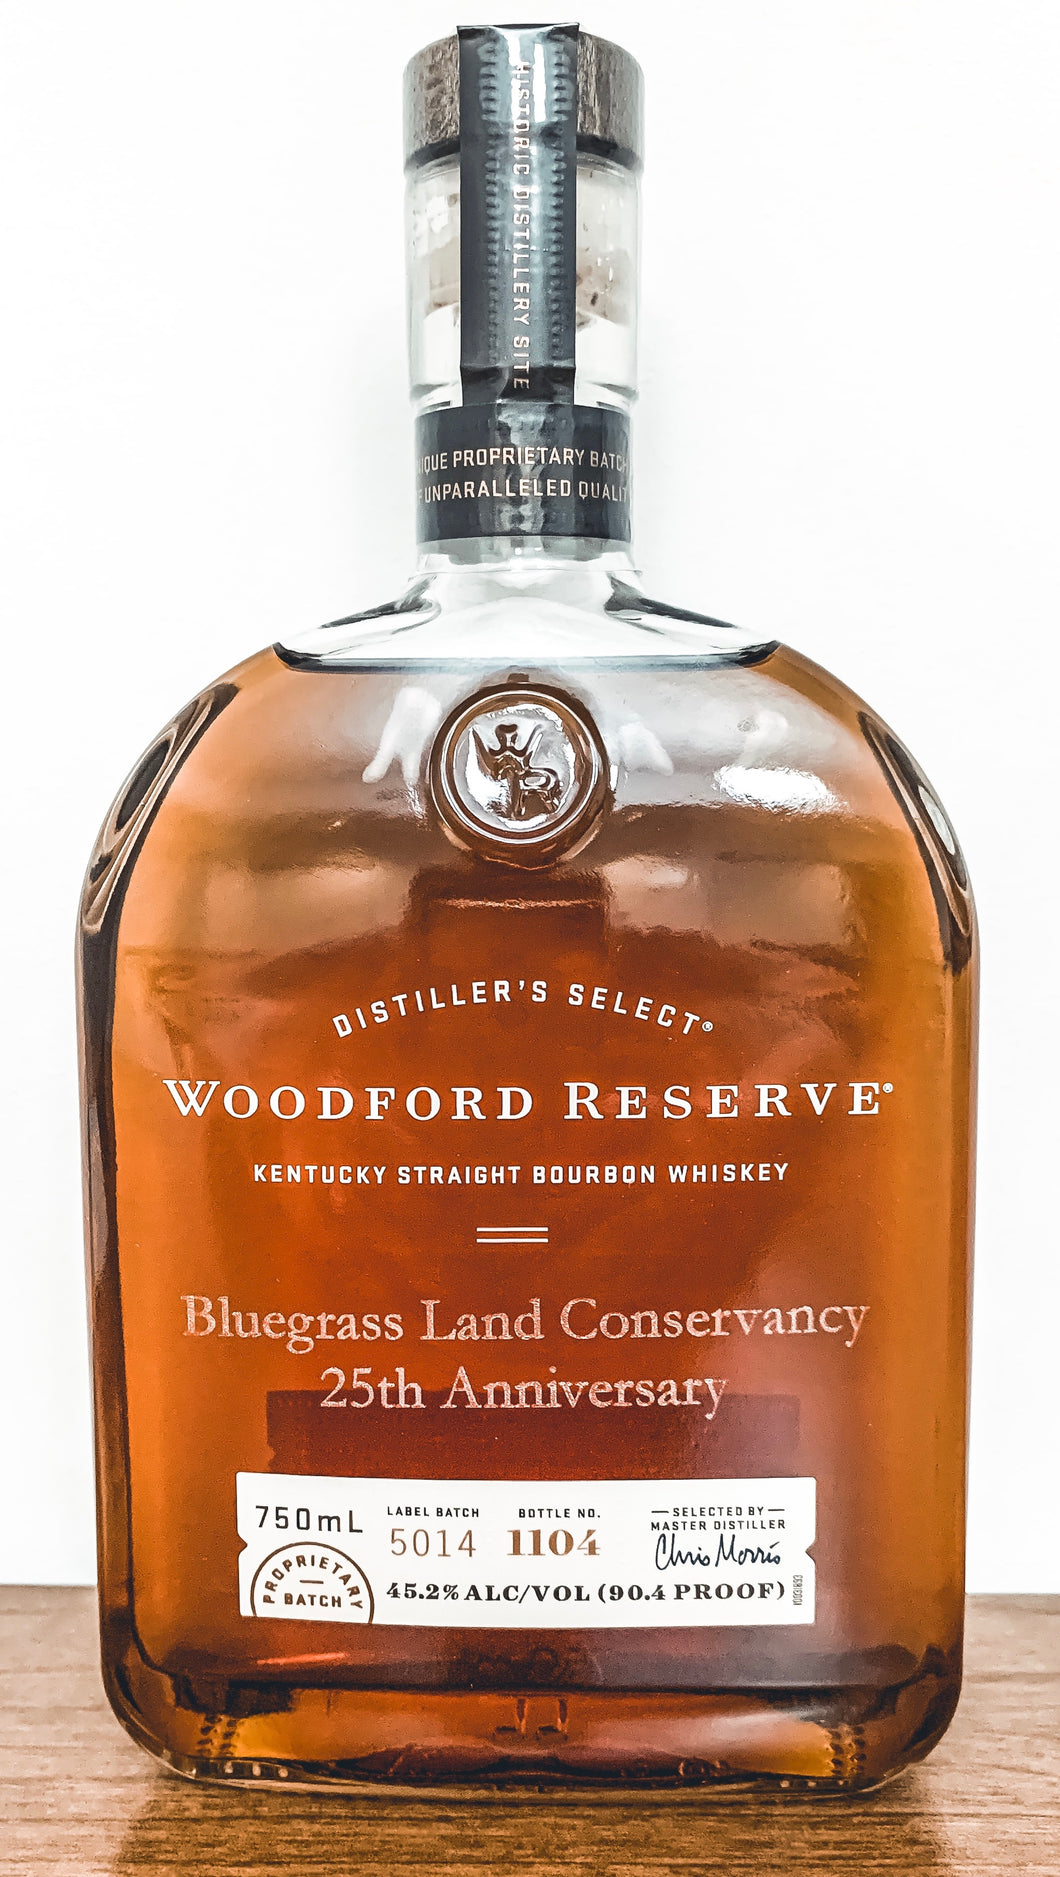 Woodford Reserve Bluegrass Land Conservancy 25th Anniversary Bottle